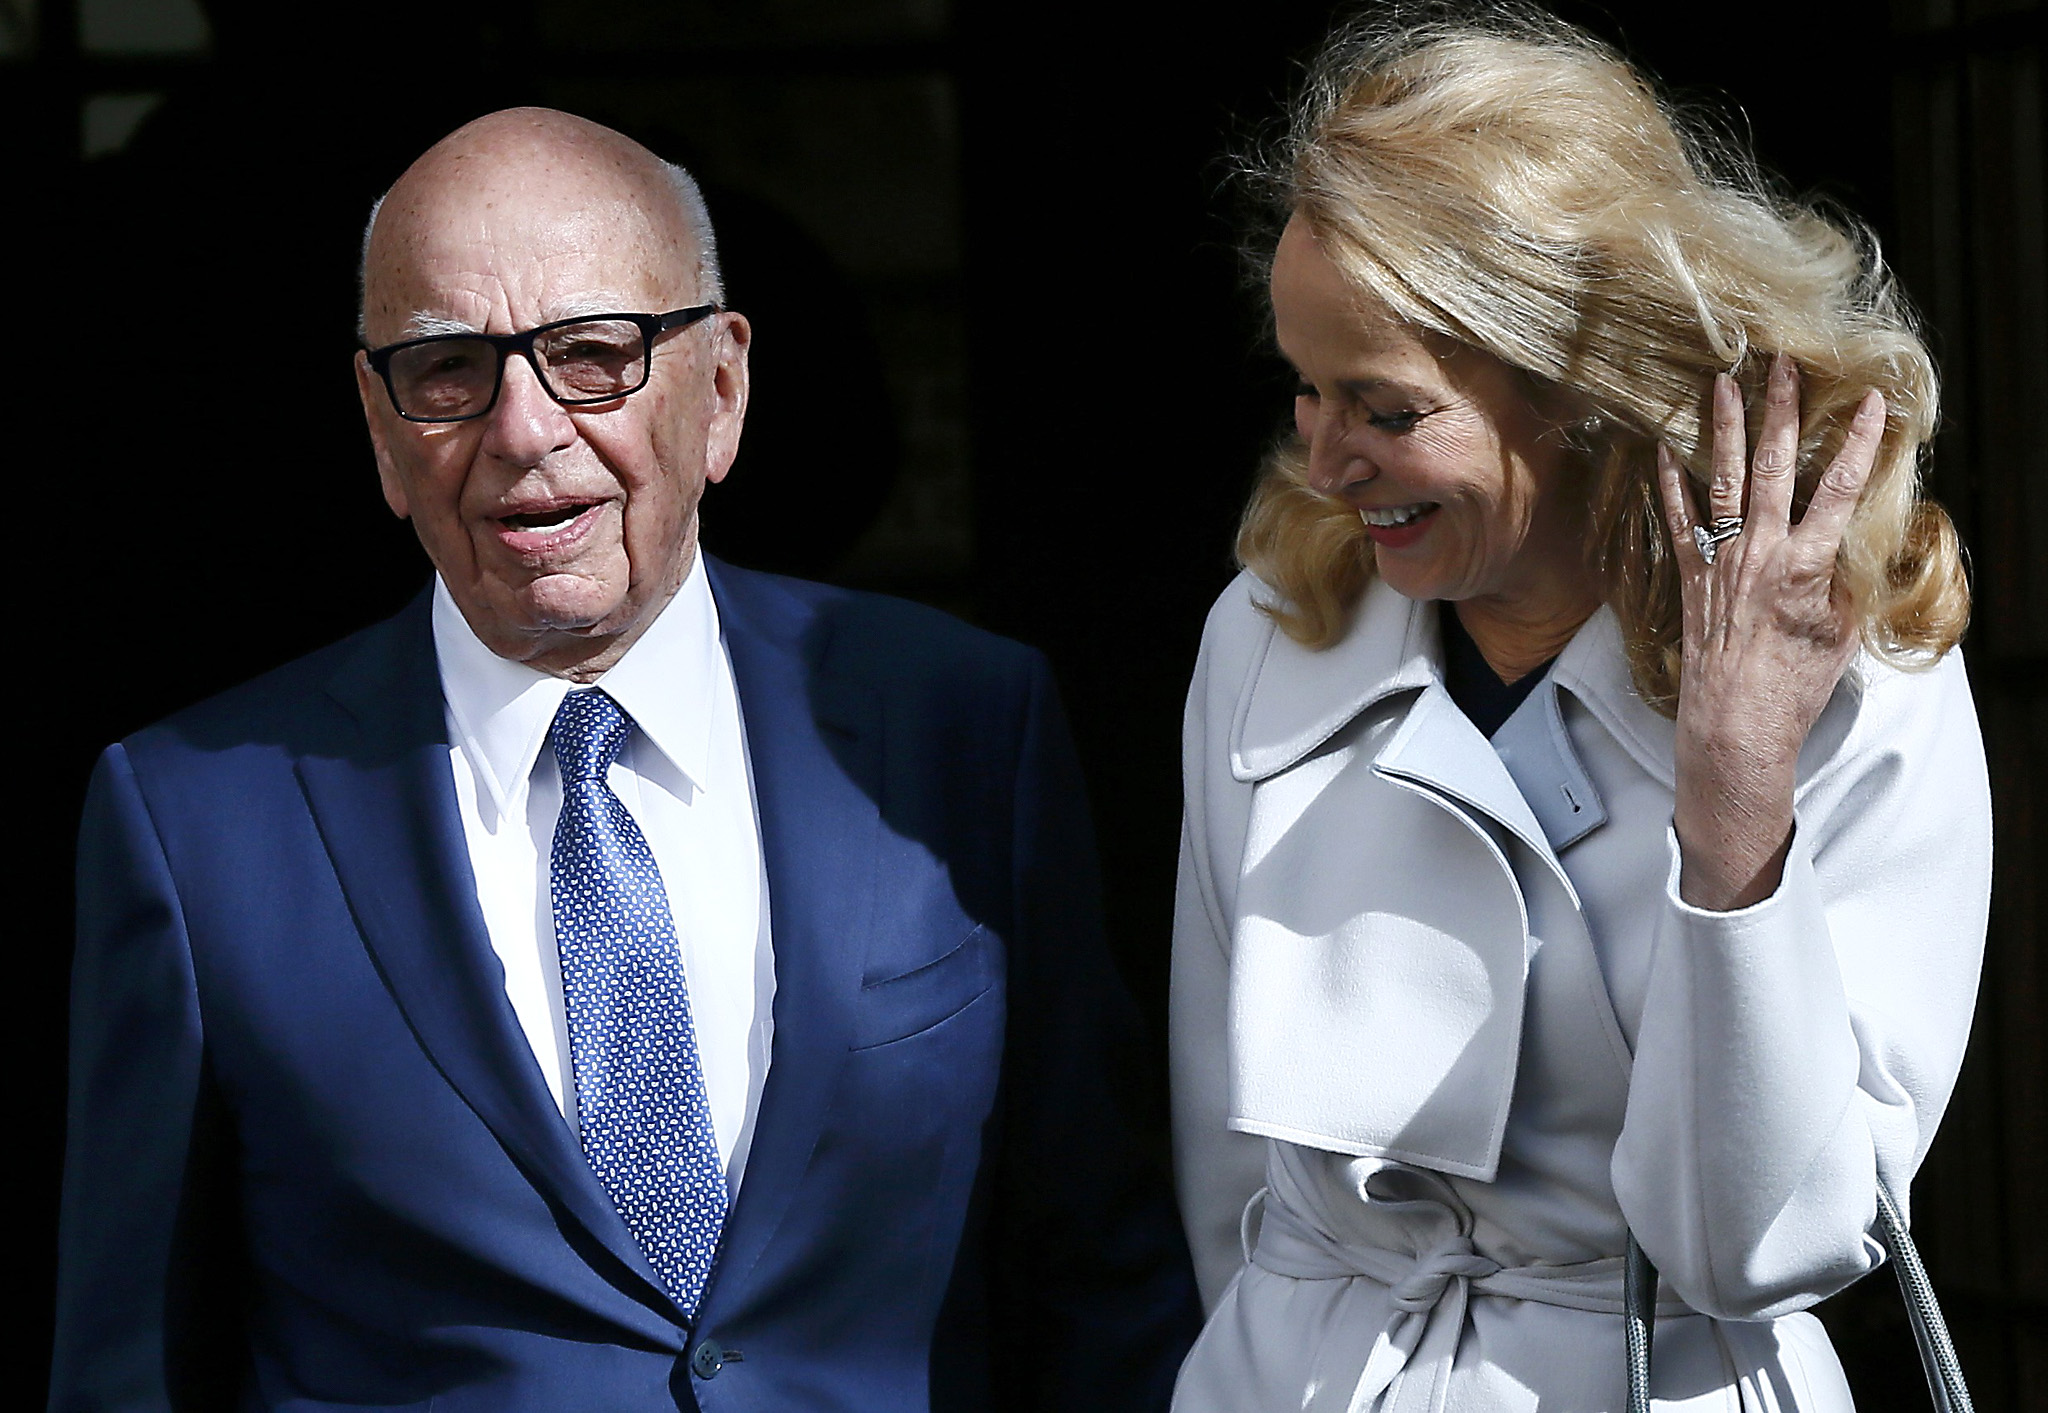 Media mogul Rupert Murdoch and Jerry Hall pose for a photograph in London...Media mogul Rupert Murdoch and Jerry Hall pose for a photograph in London, Britain March 4, 2016. REUTERS/Stefan Wermuth